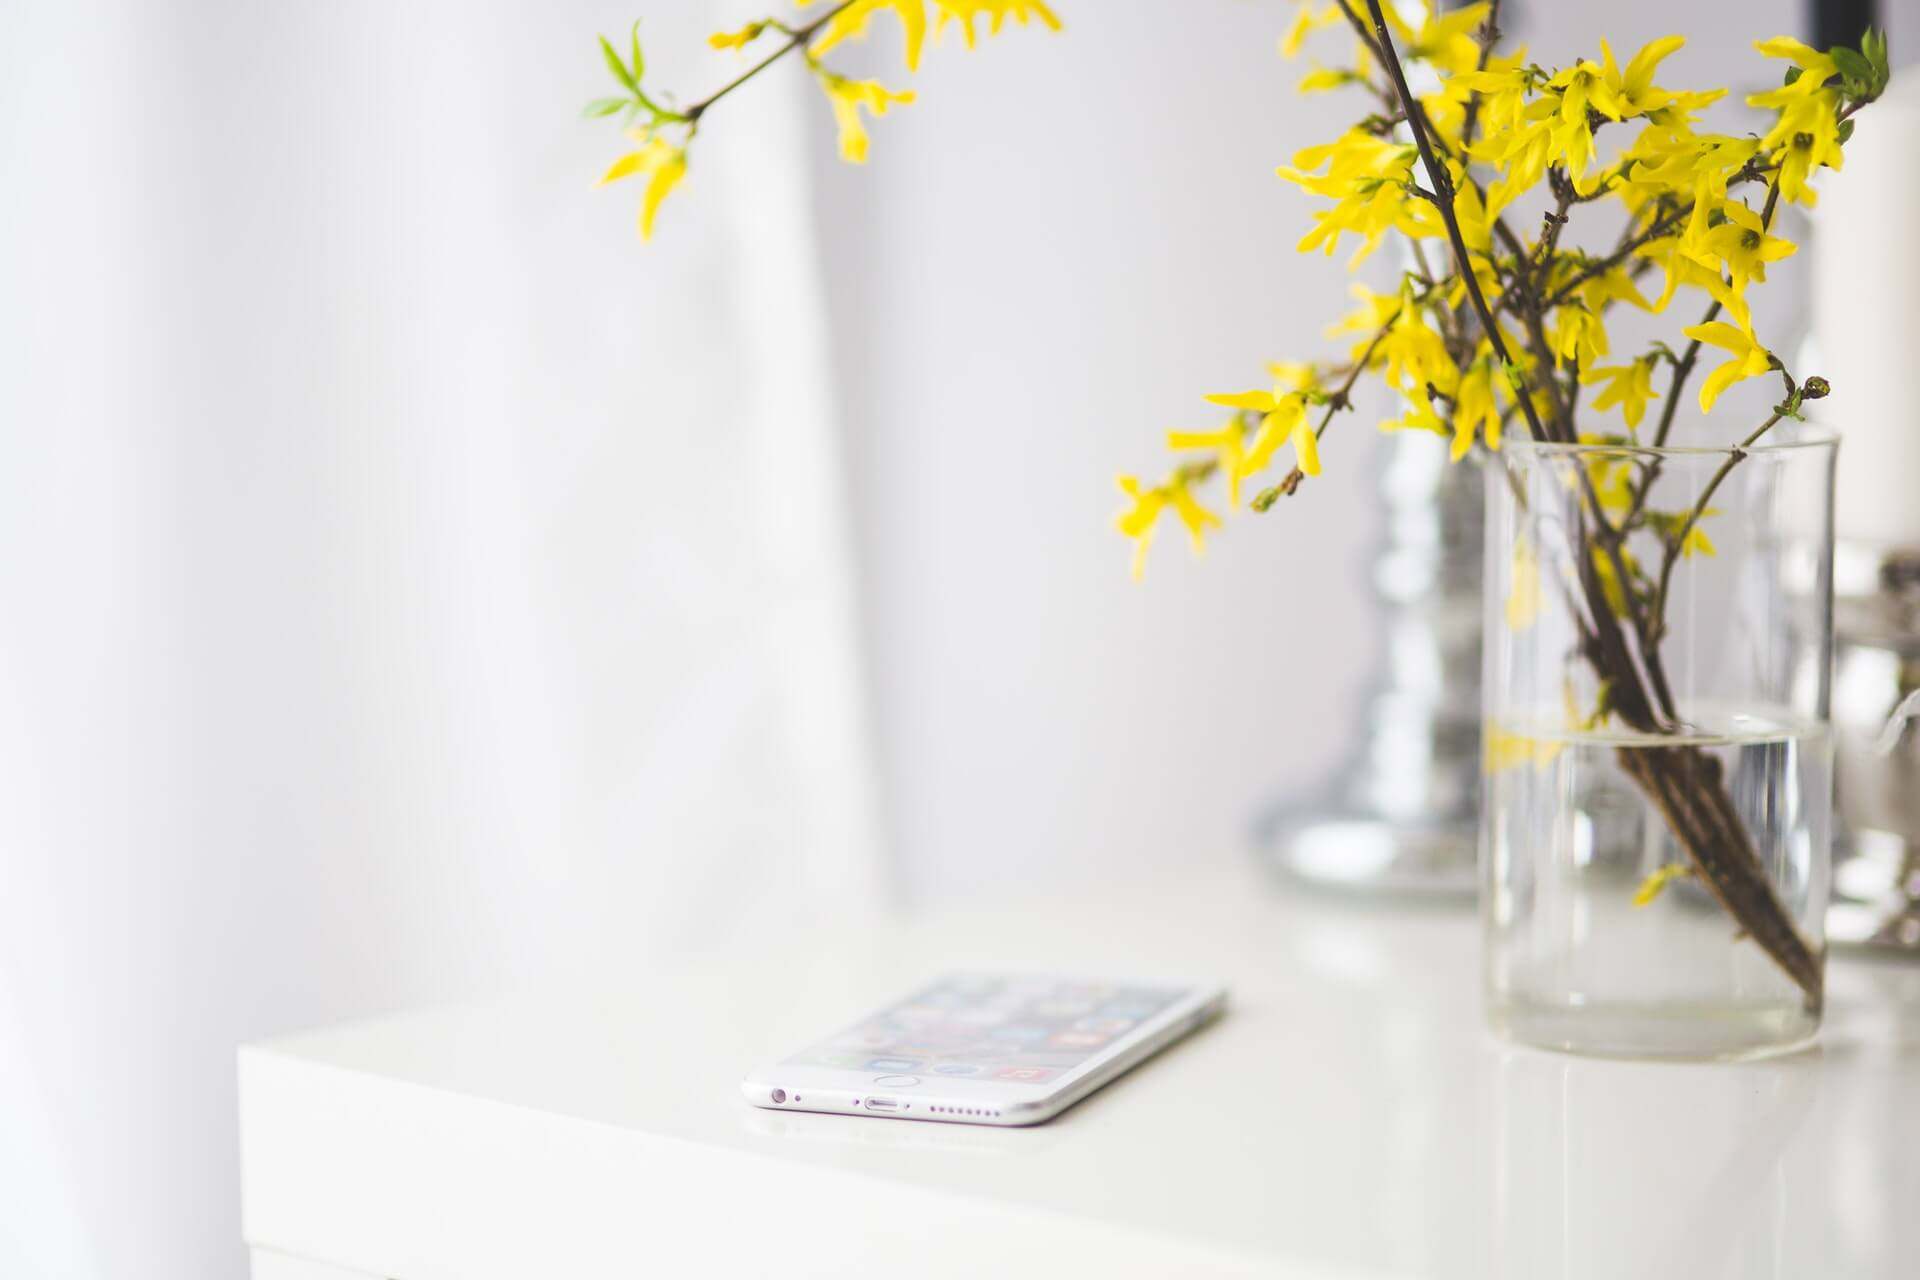 iphone with flowers